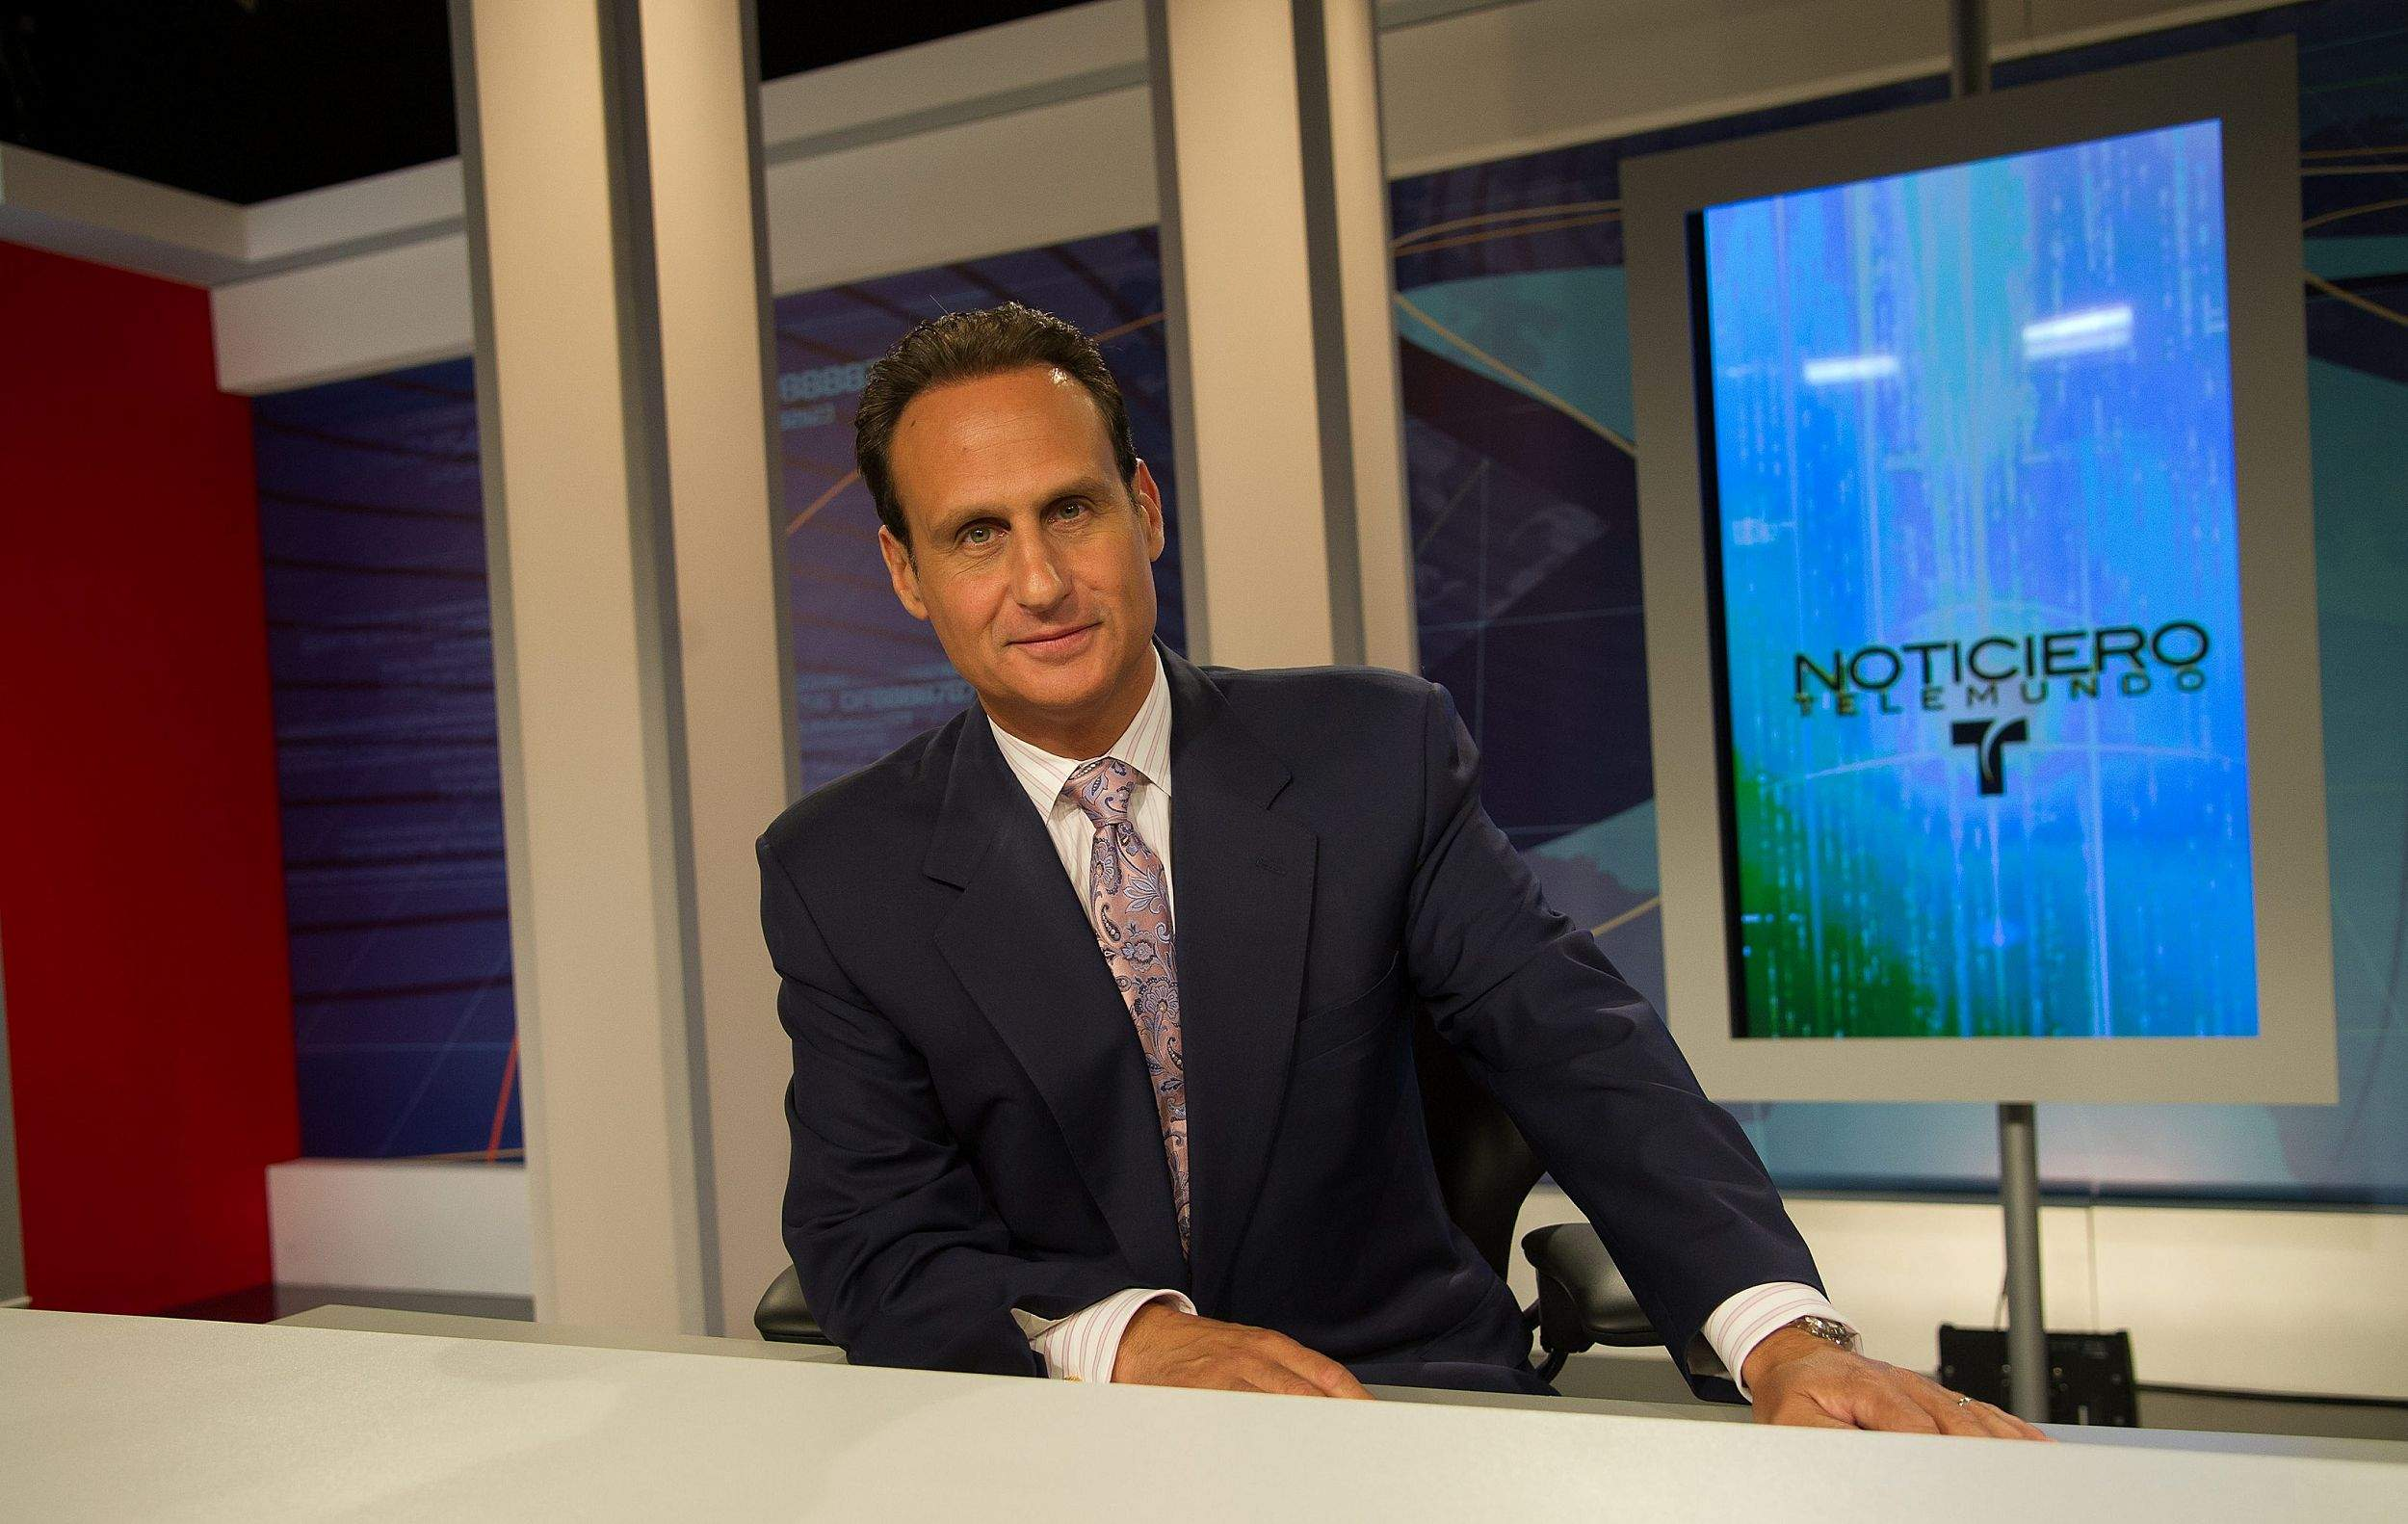 Spanish Tv News Grows As 2012 Election Nears